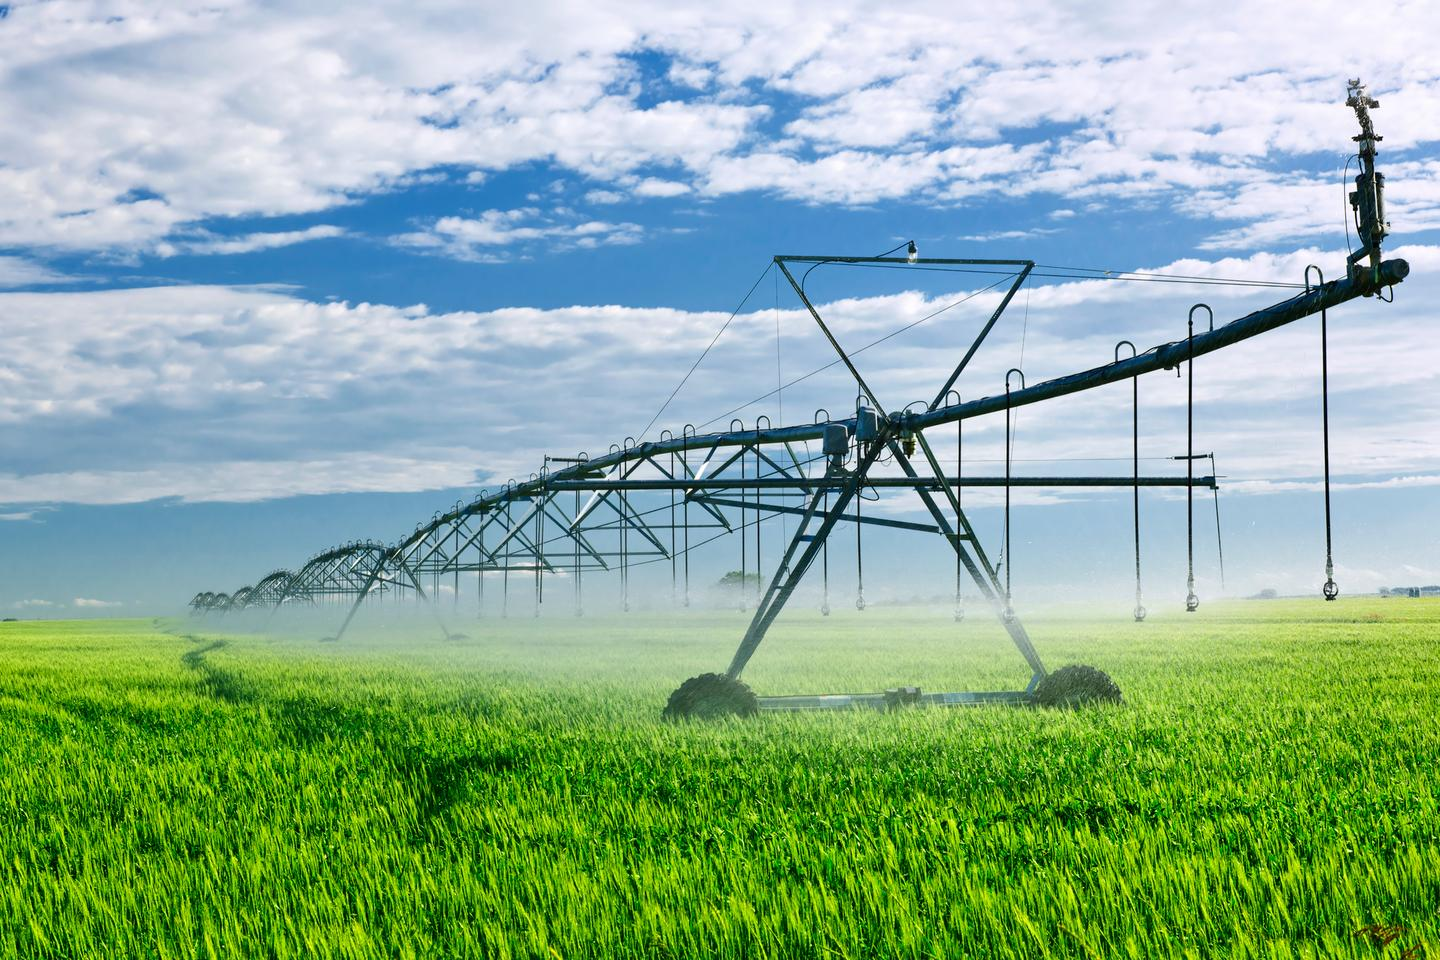 The technology could ultimately be incorporated directly into irrigation systems